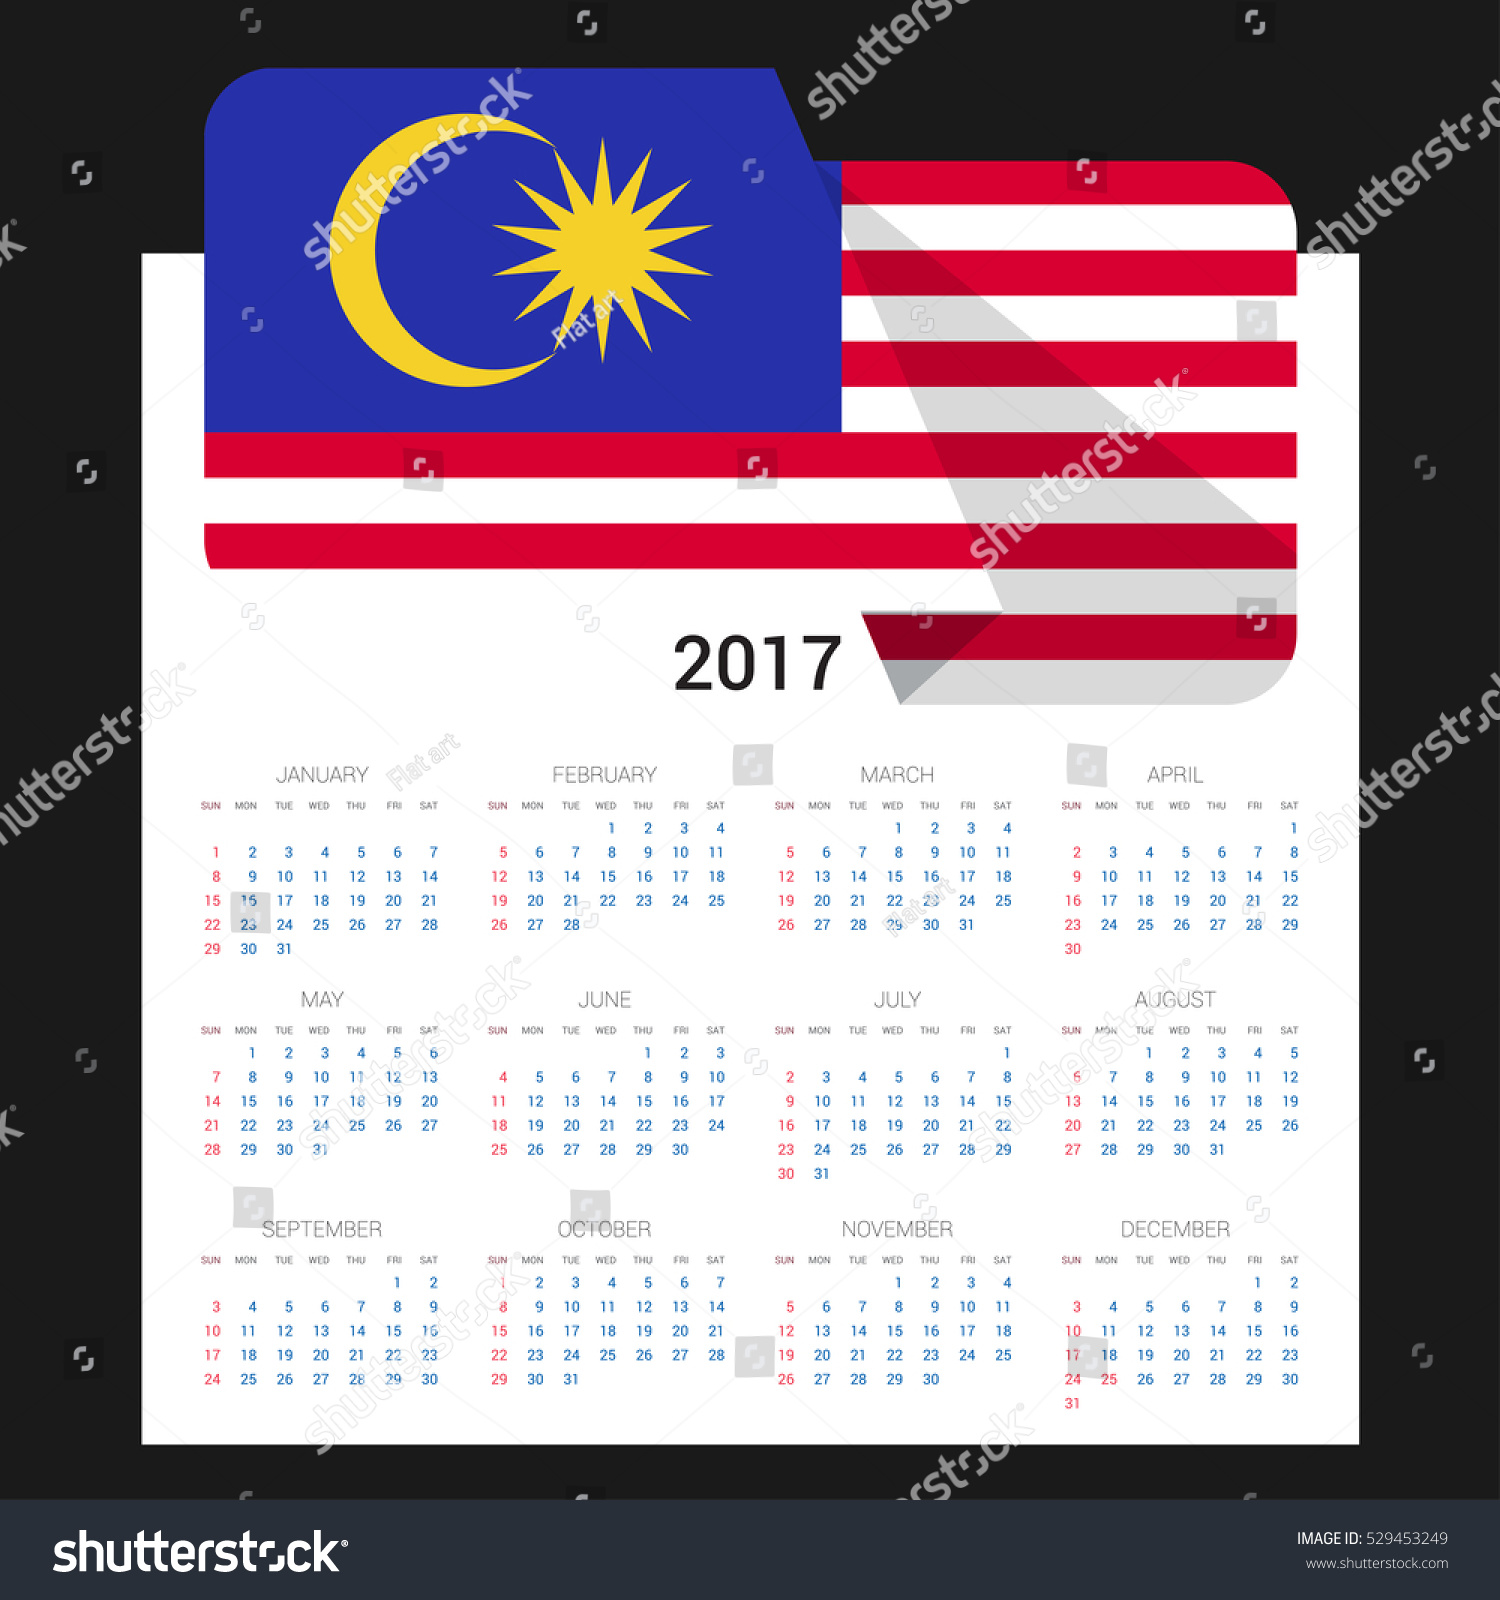 Calendar grid 2017 malaysia flag on stock vector 529453249 calendar grid for 2017 with malaysia flag on 2017 national flag on a black background biocorpaavc Image collections